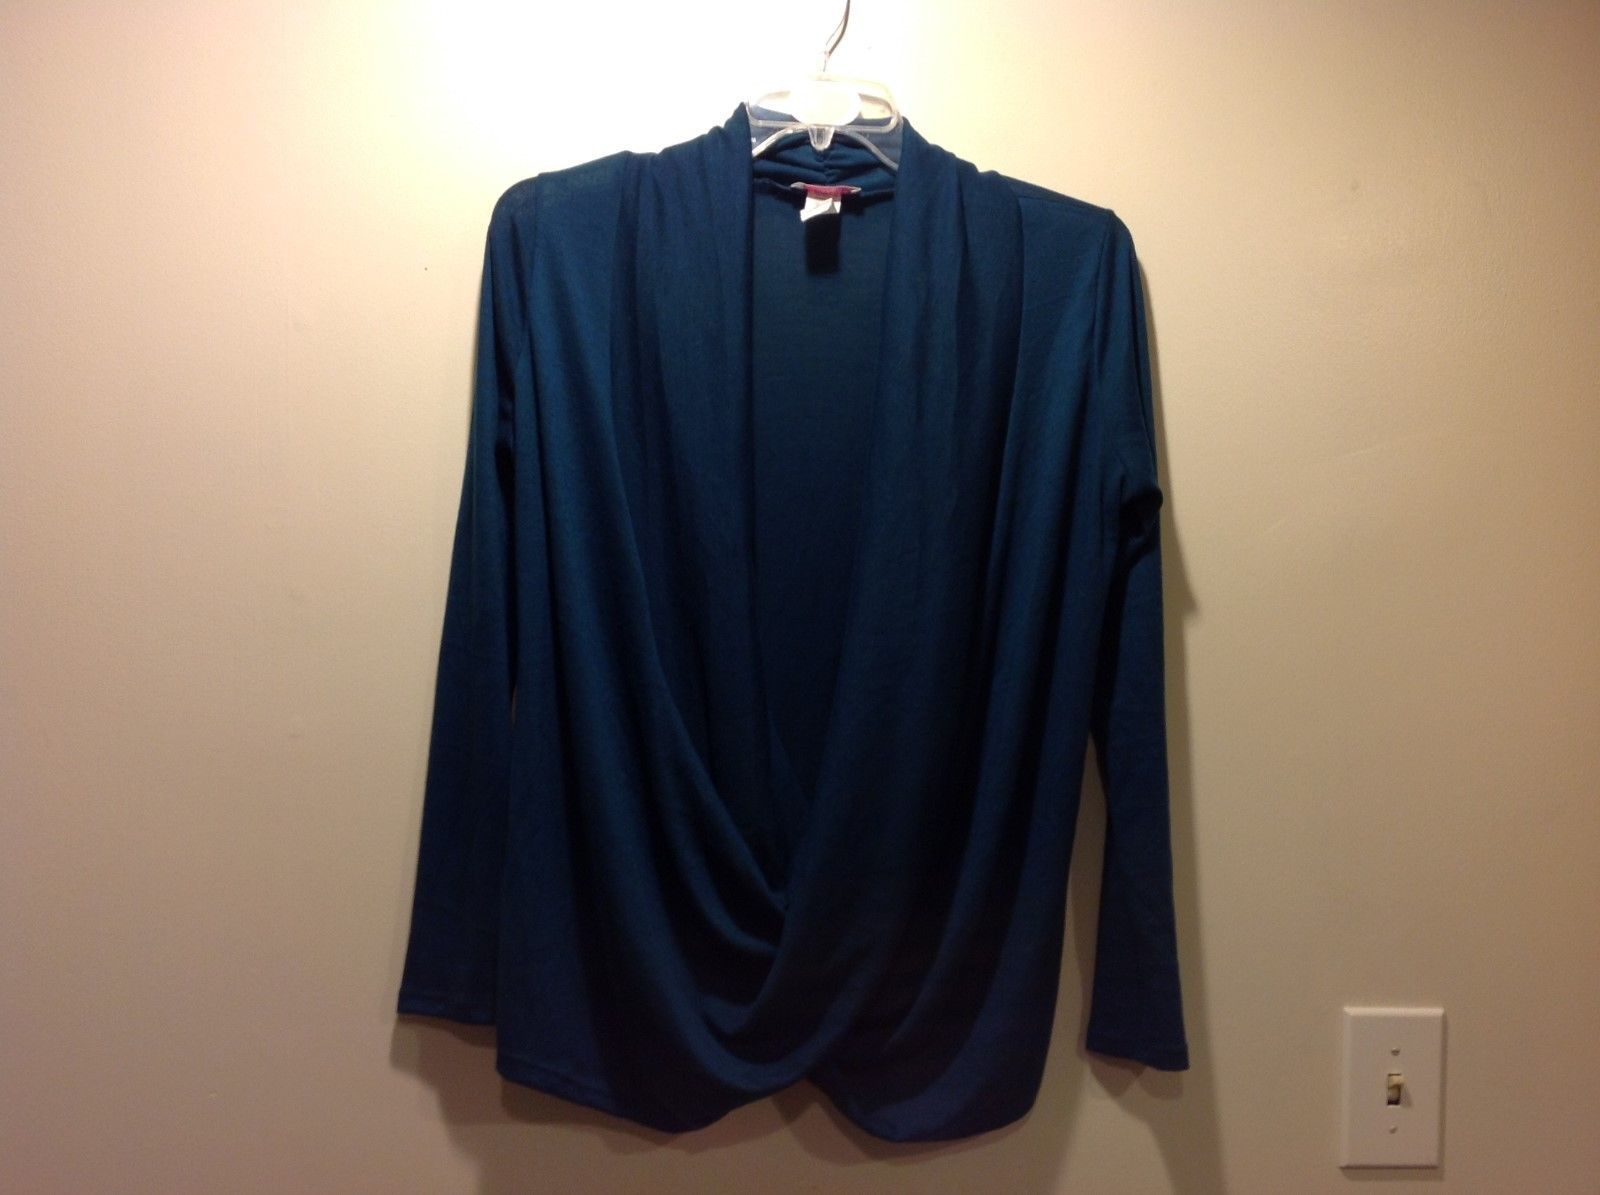 Long Sleeve Stretchy Aquamarine Ocean Blue Shawl Cardigan Sweater Sz 1X